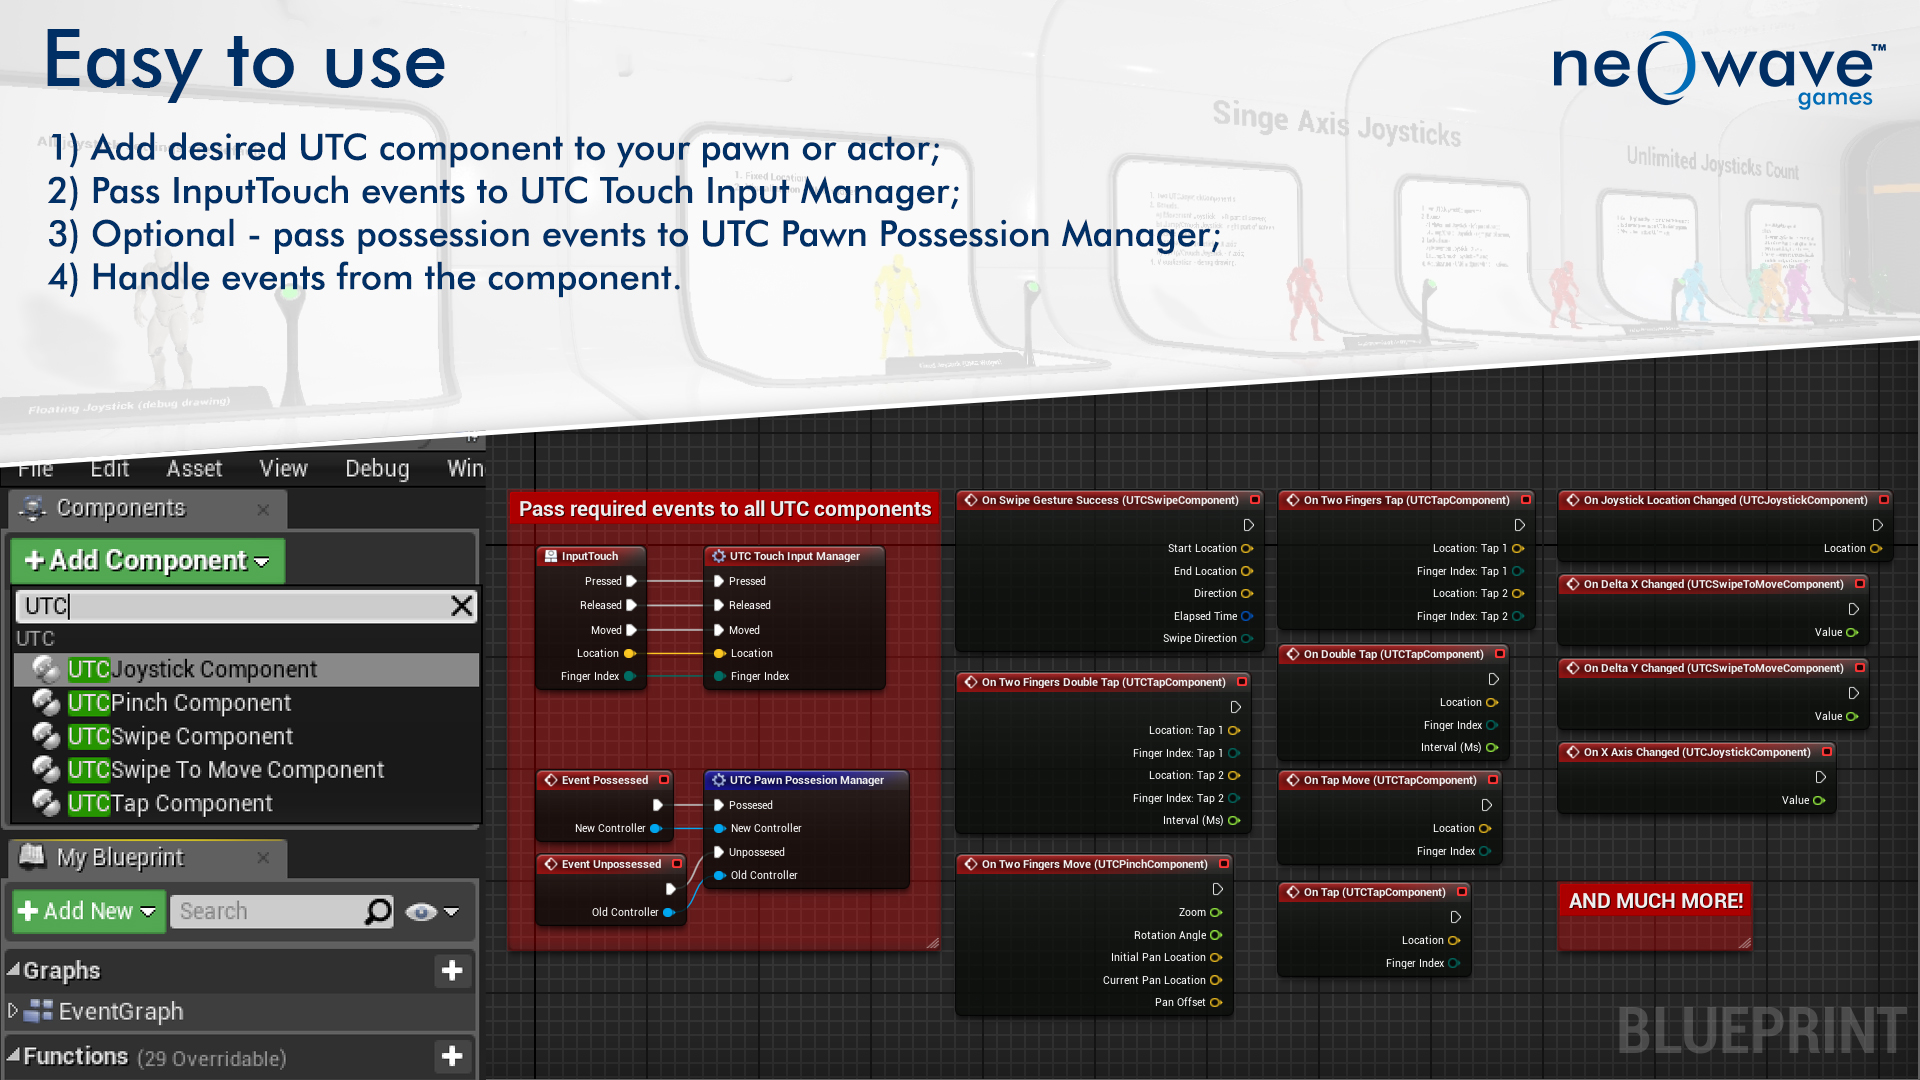 Ultimate Touch Components by Neo Wave Games in Blueprints